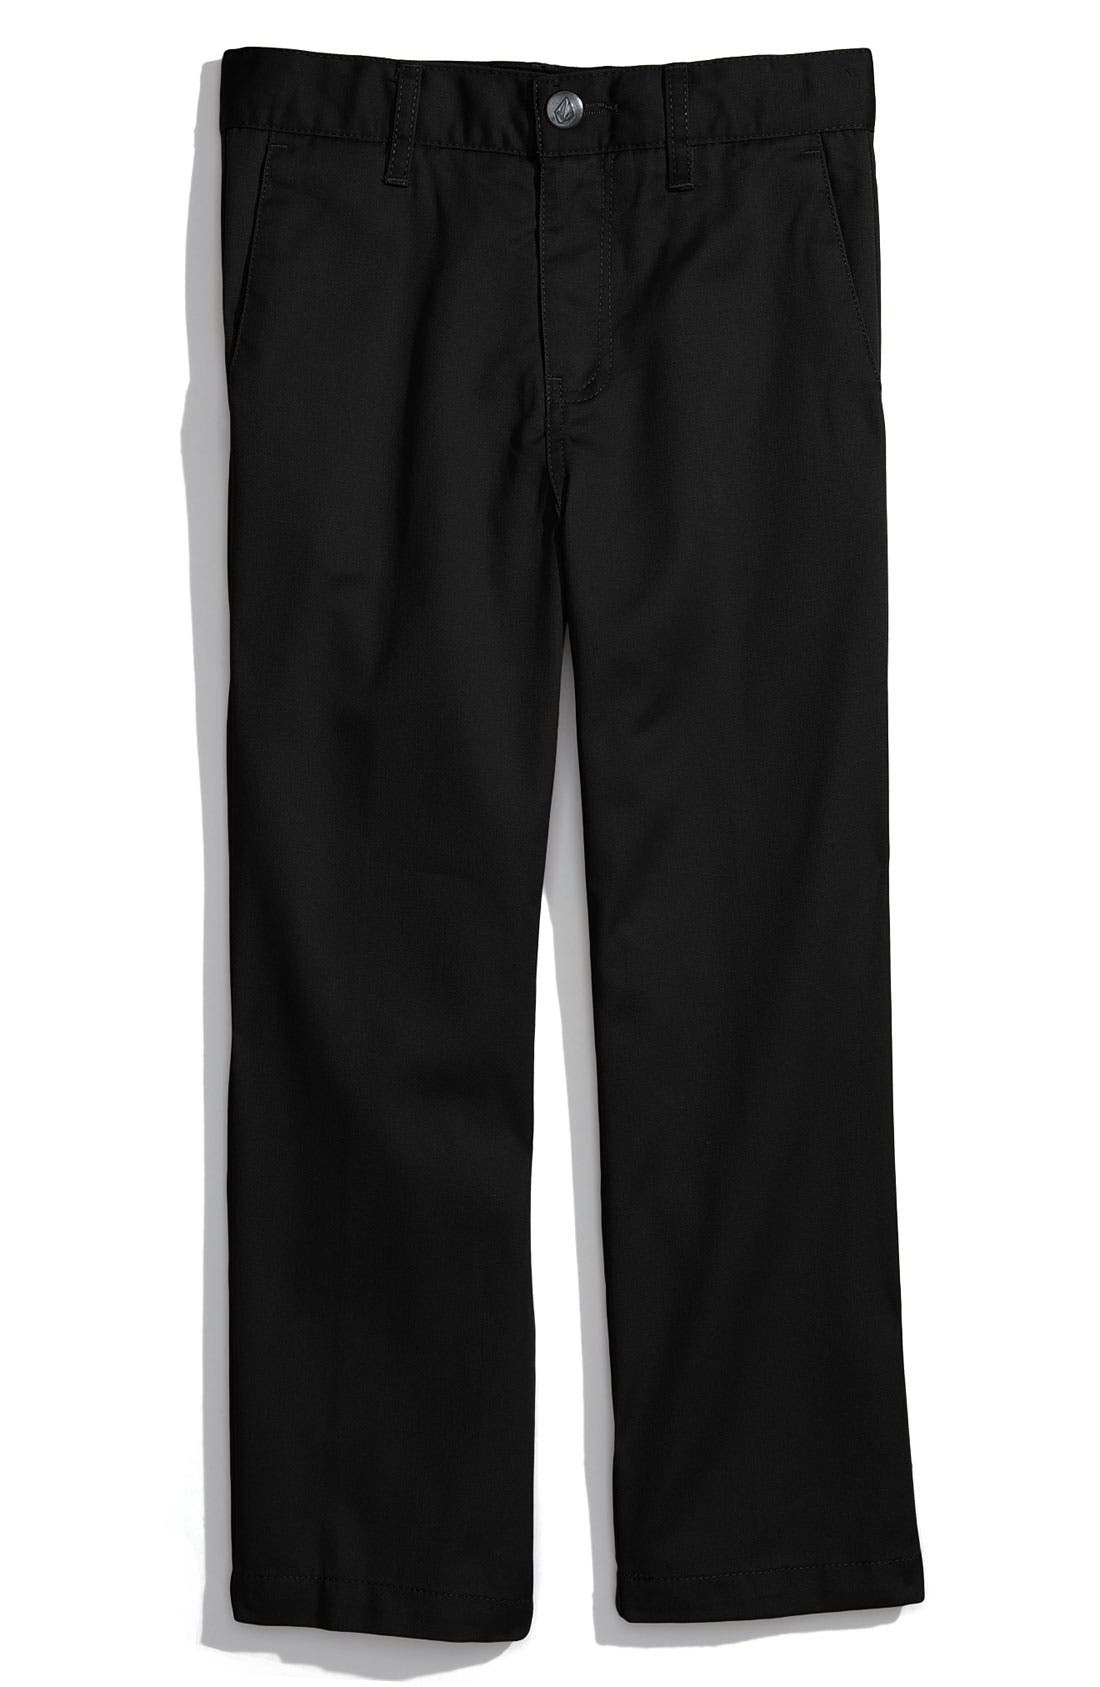 Alternate Image 1 Selected - Volcom 'Modern' Chinos (Little Boys)